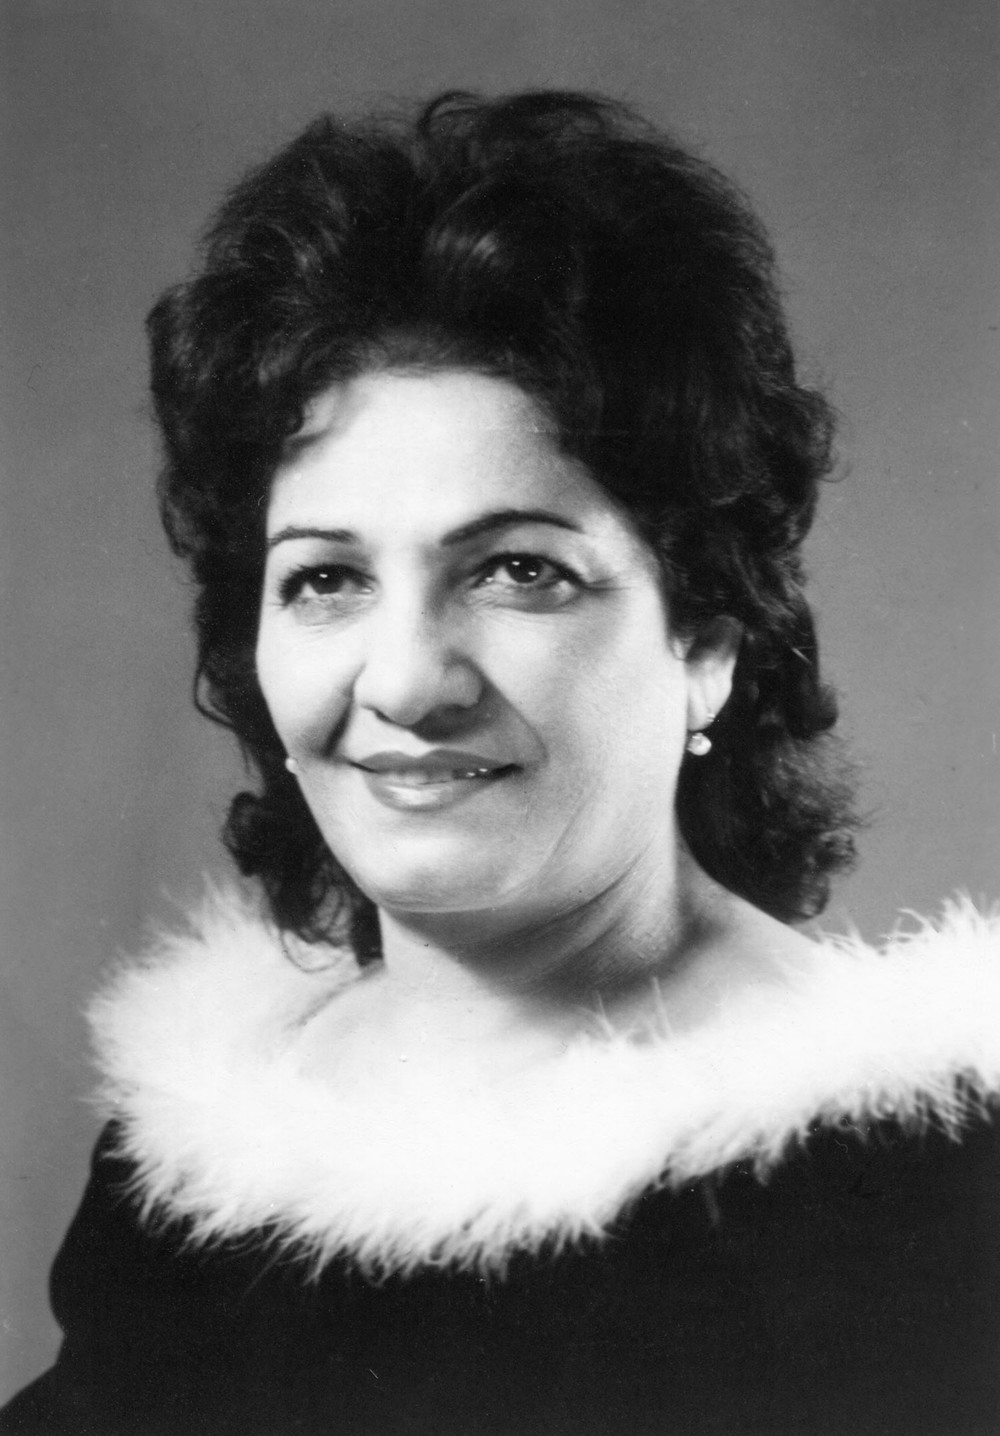 001 Ophelia Hambartsumian B&W early years.jpg